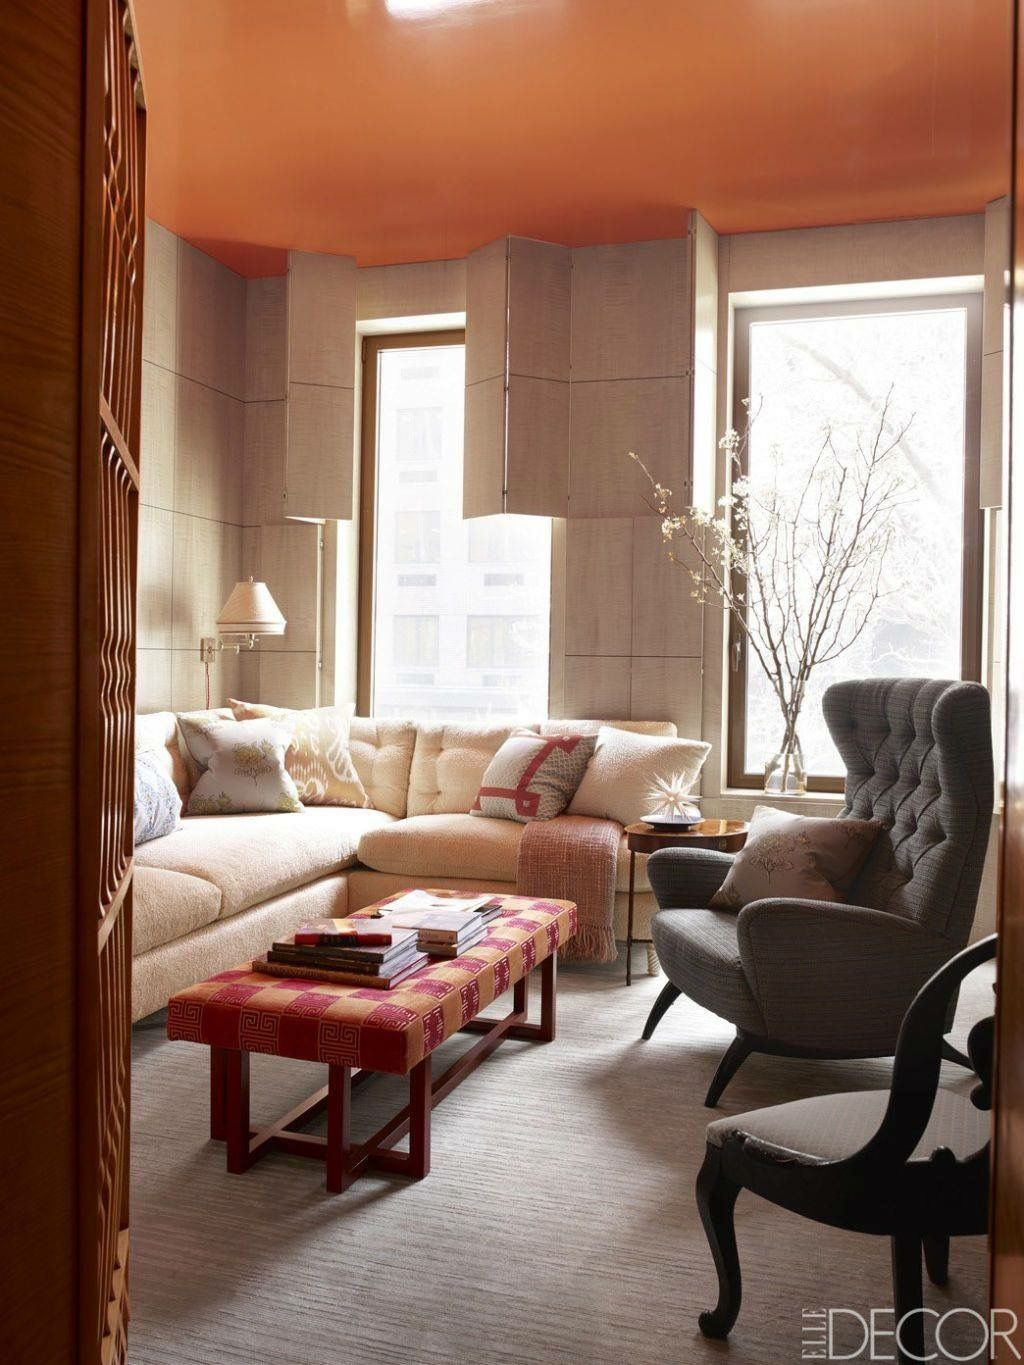 pinshirley arnold on places of home  elle decor